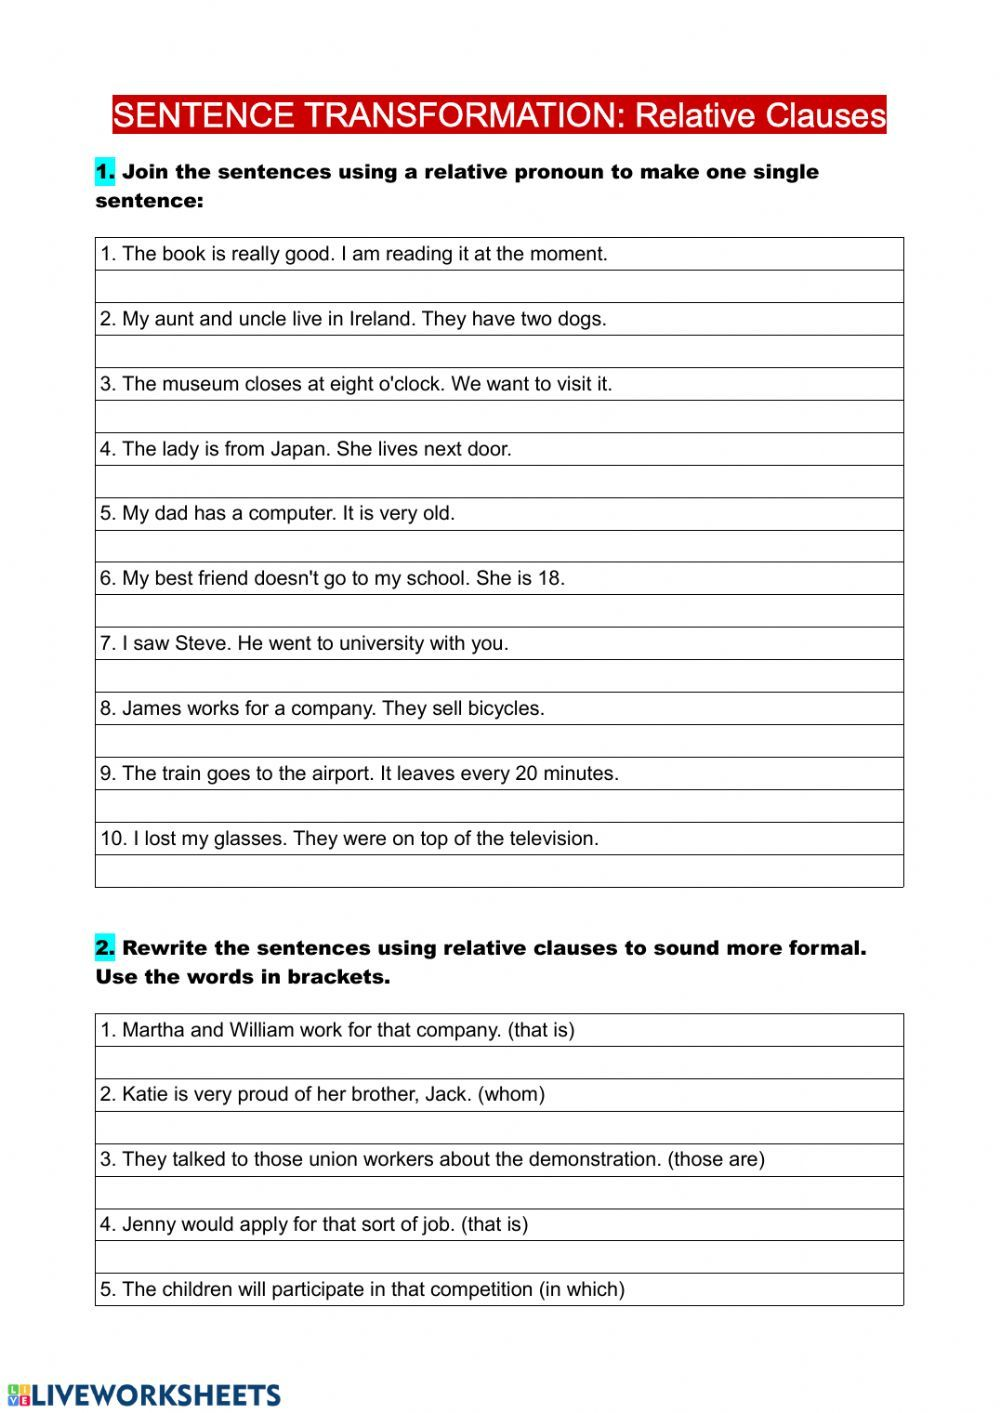 medium resolution of Relative clauses interactive and downloadable worksheet. You can do the  exercises online or download the worksheet as…   Relative clauses